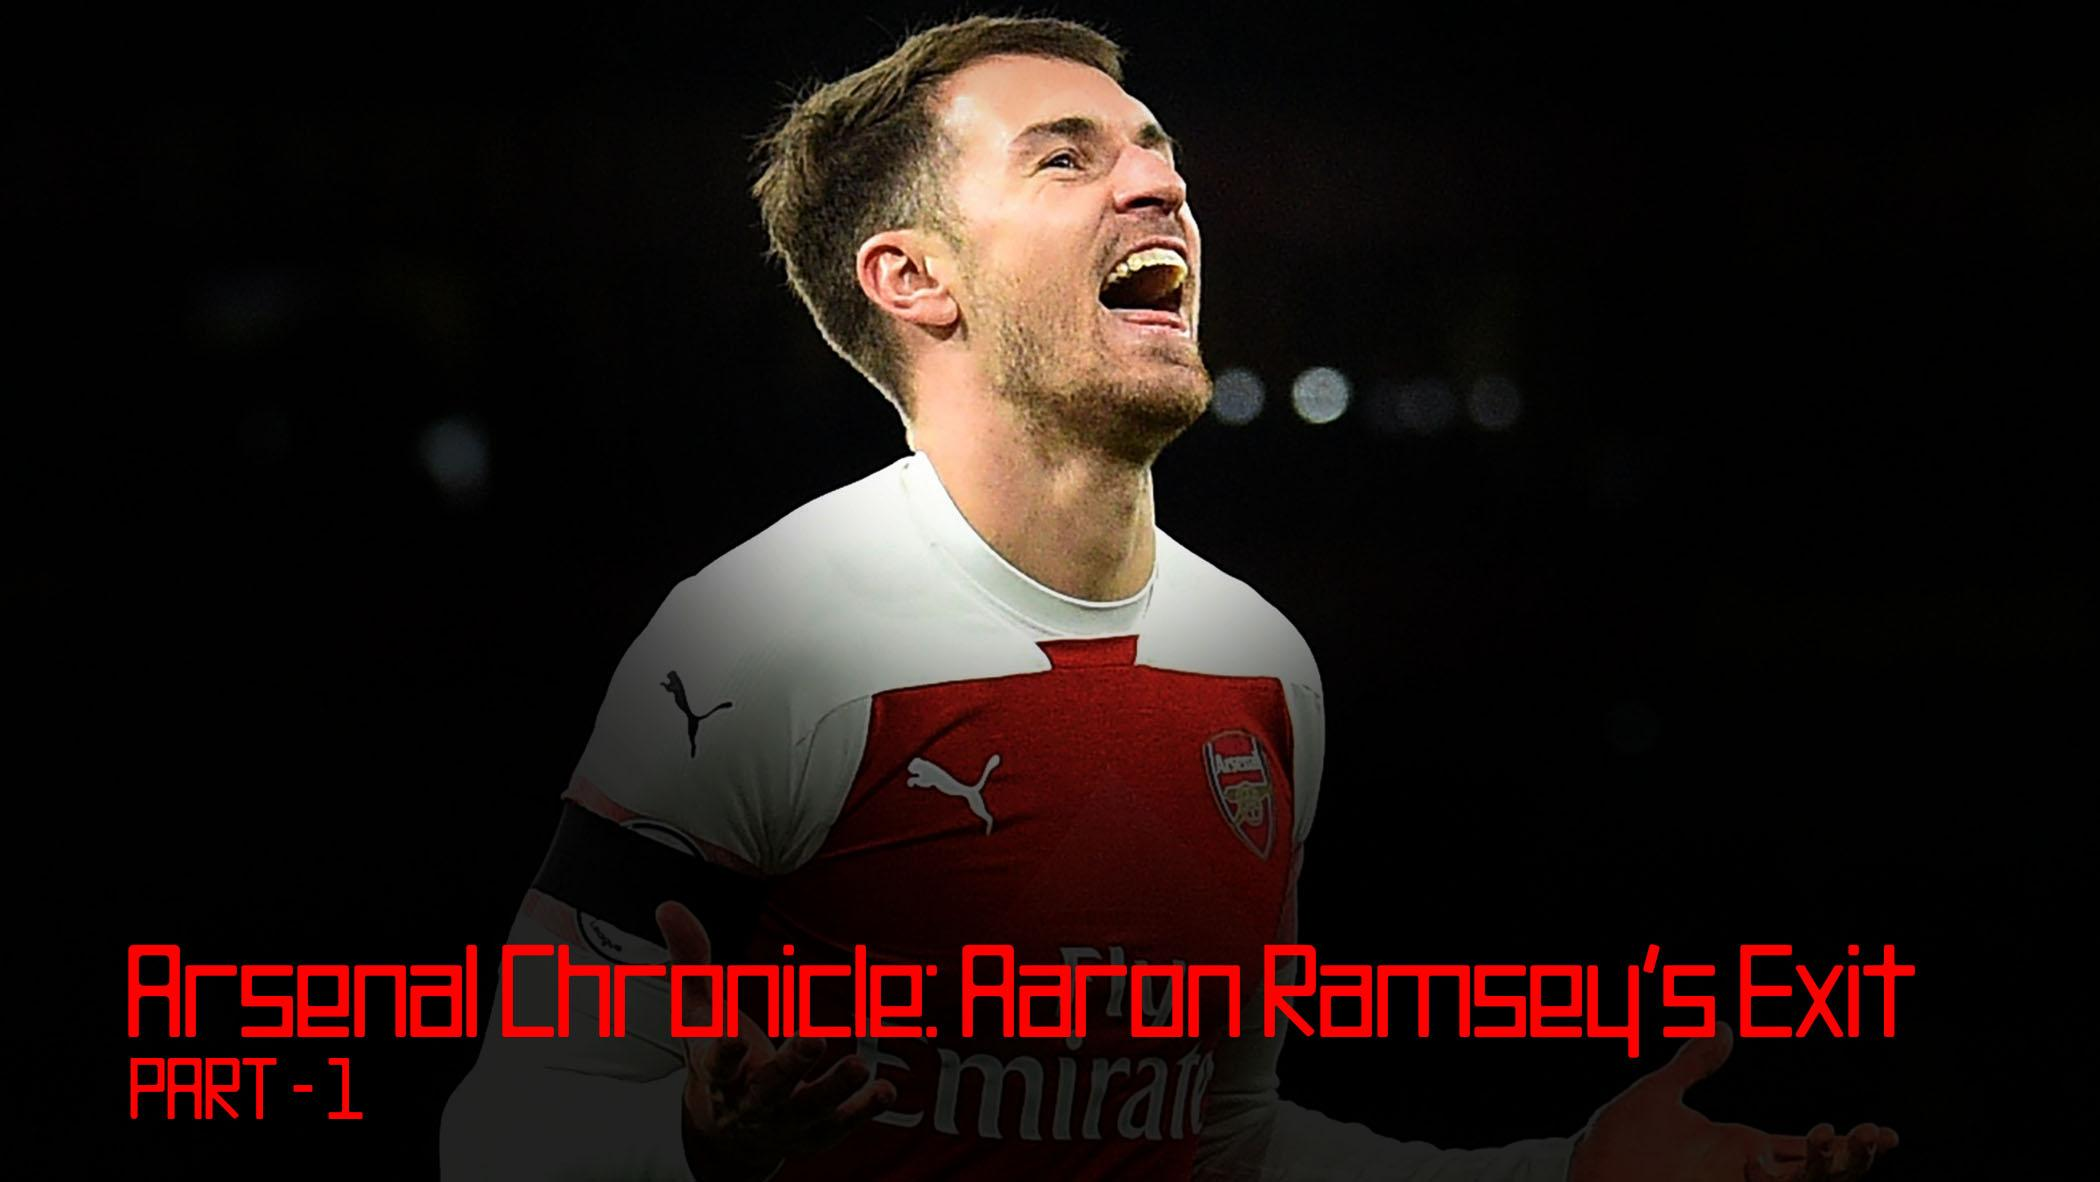 Arsenal-Chronicle-Aaron-Ramseys-Exit